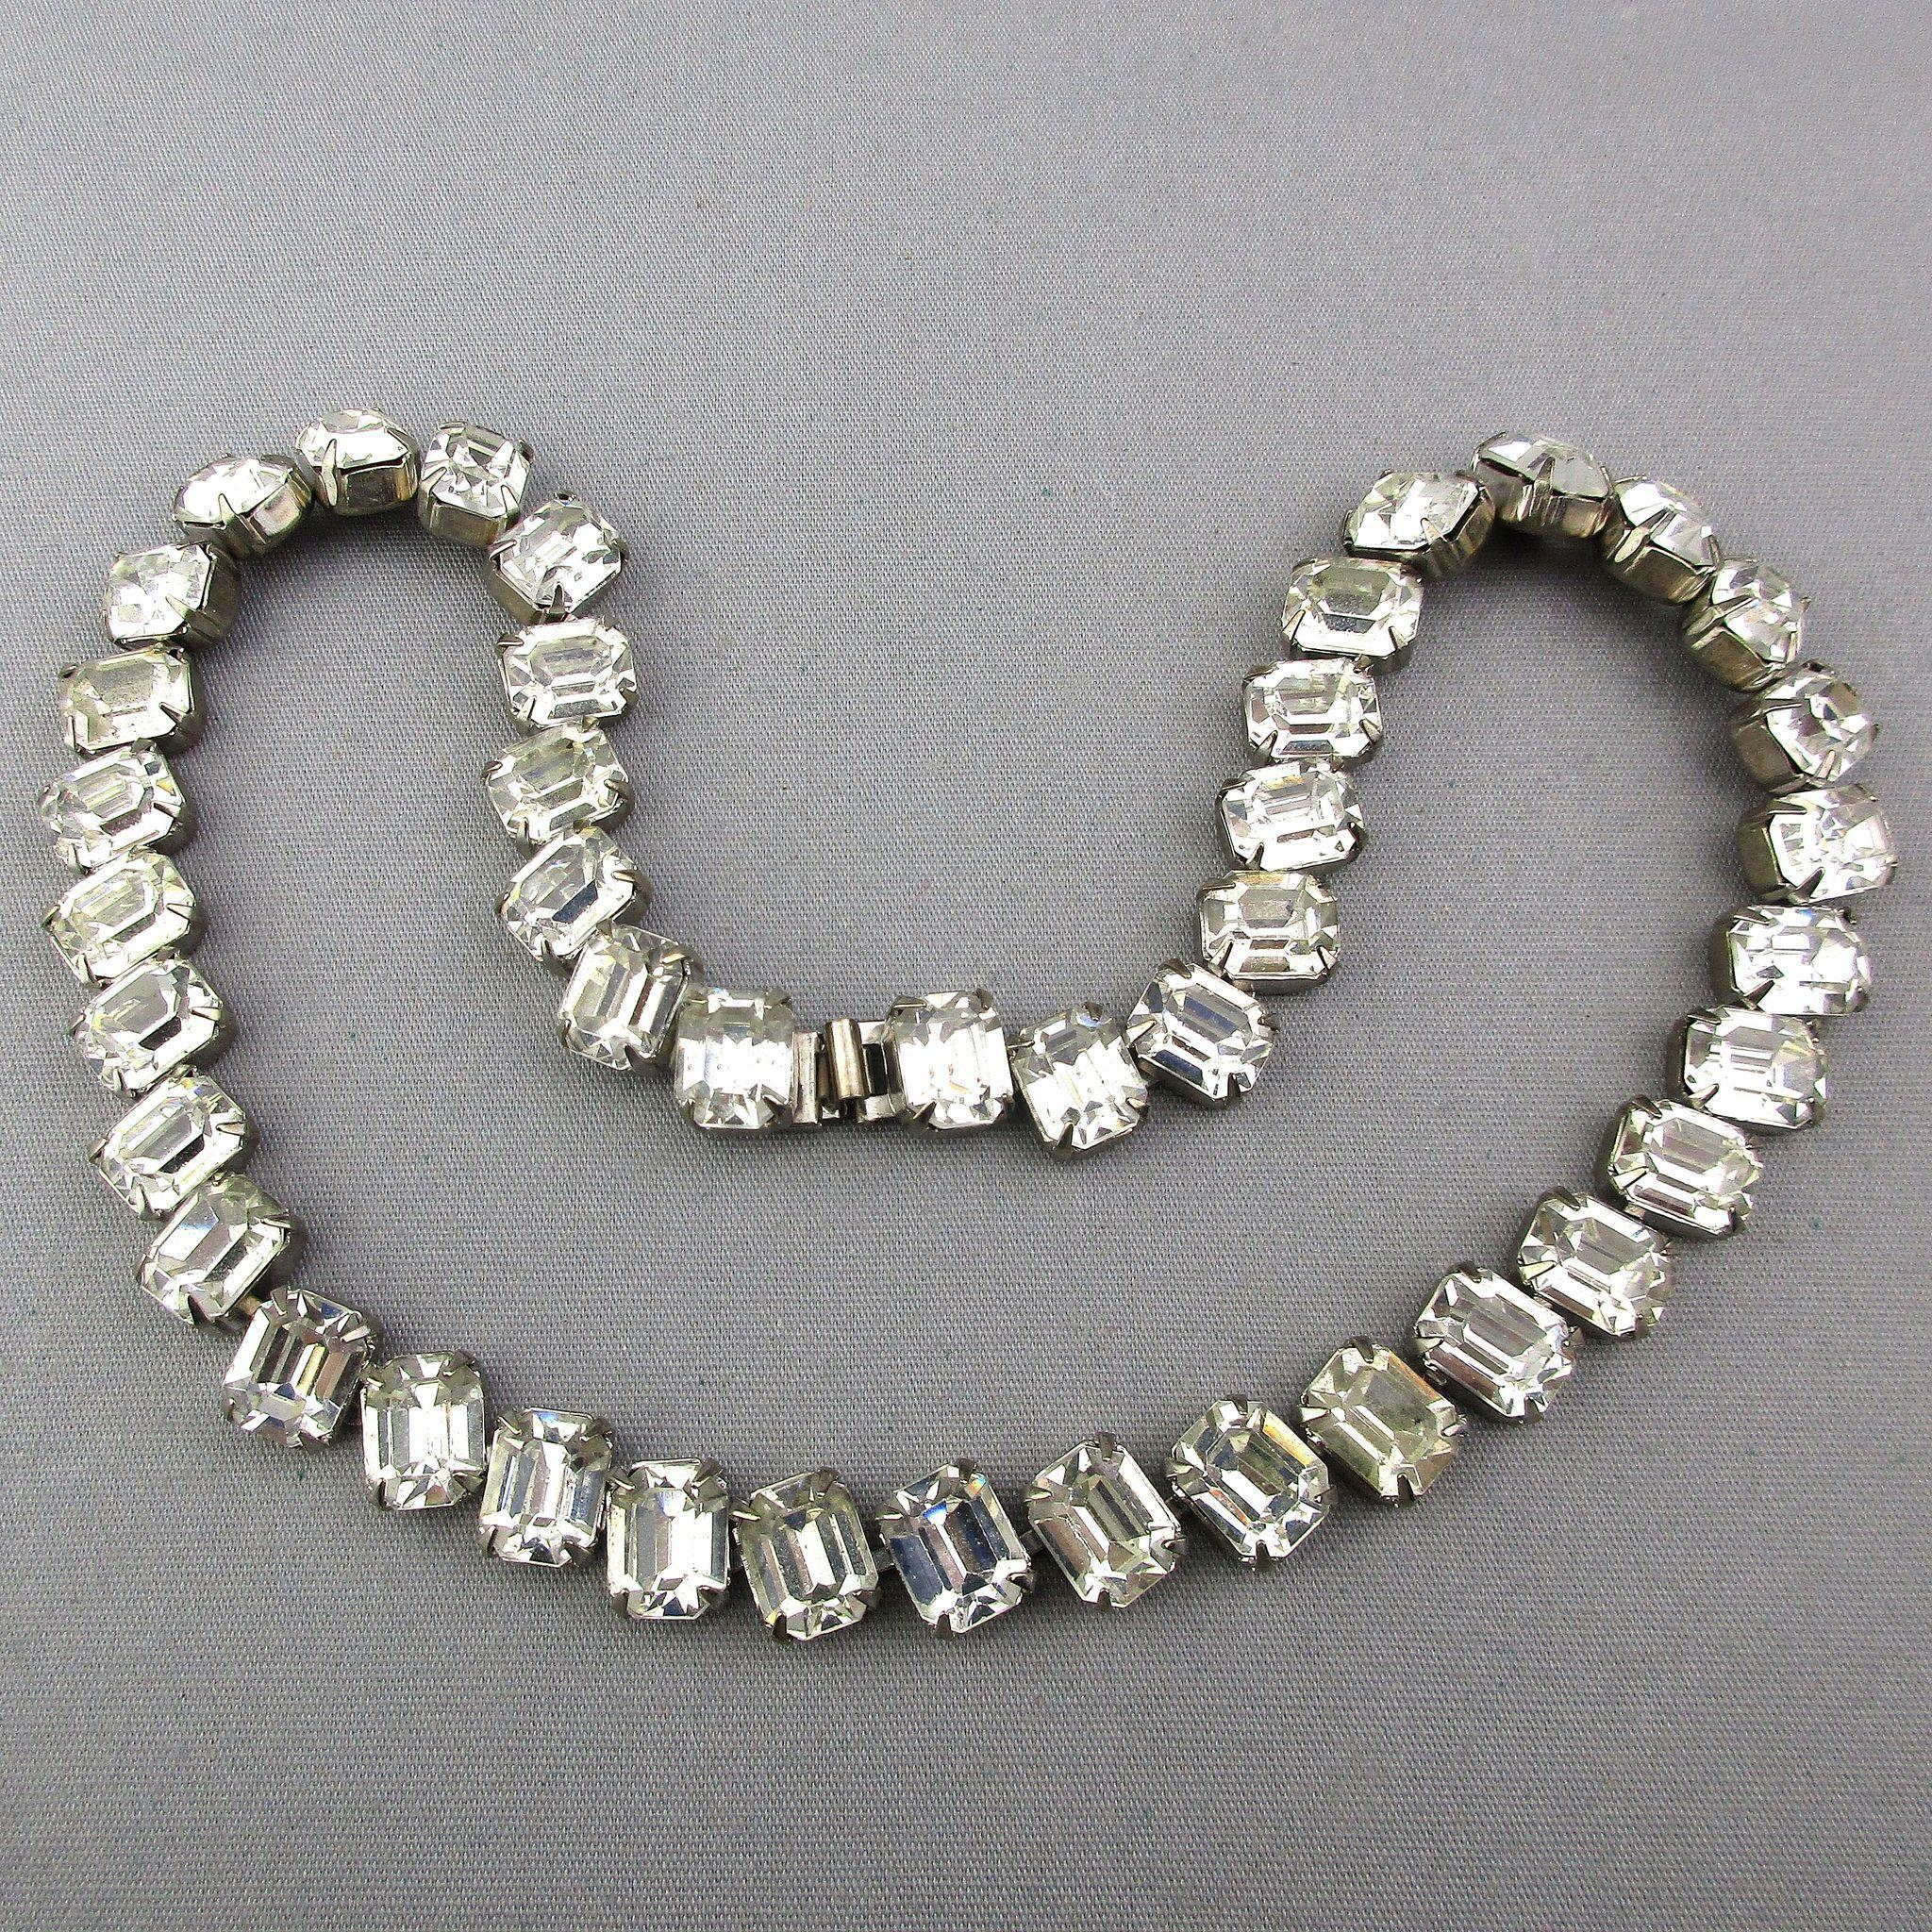 Vintage Kirk's Folly Chunky Rhinestone Hollywood Style Necklace